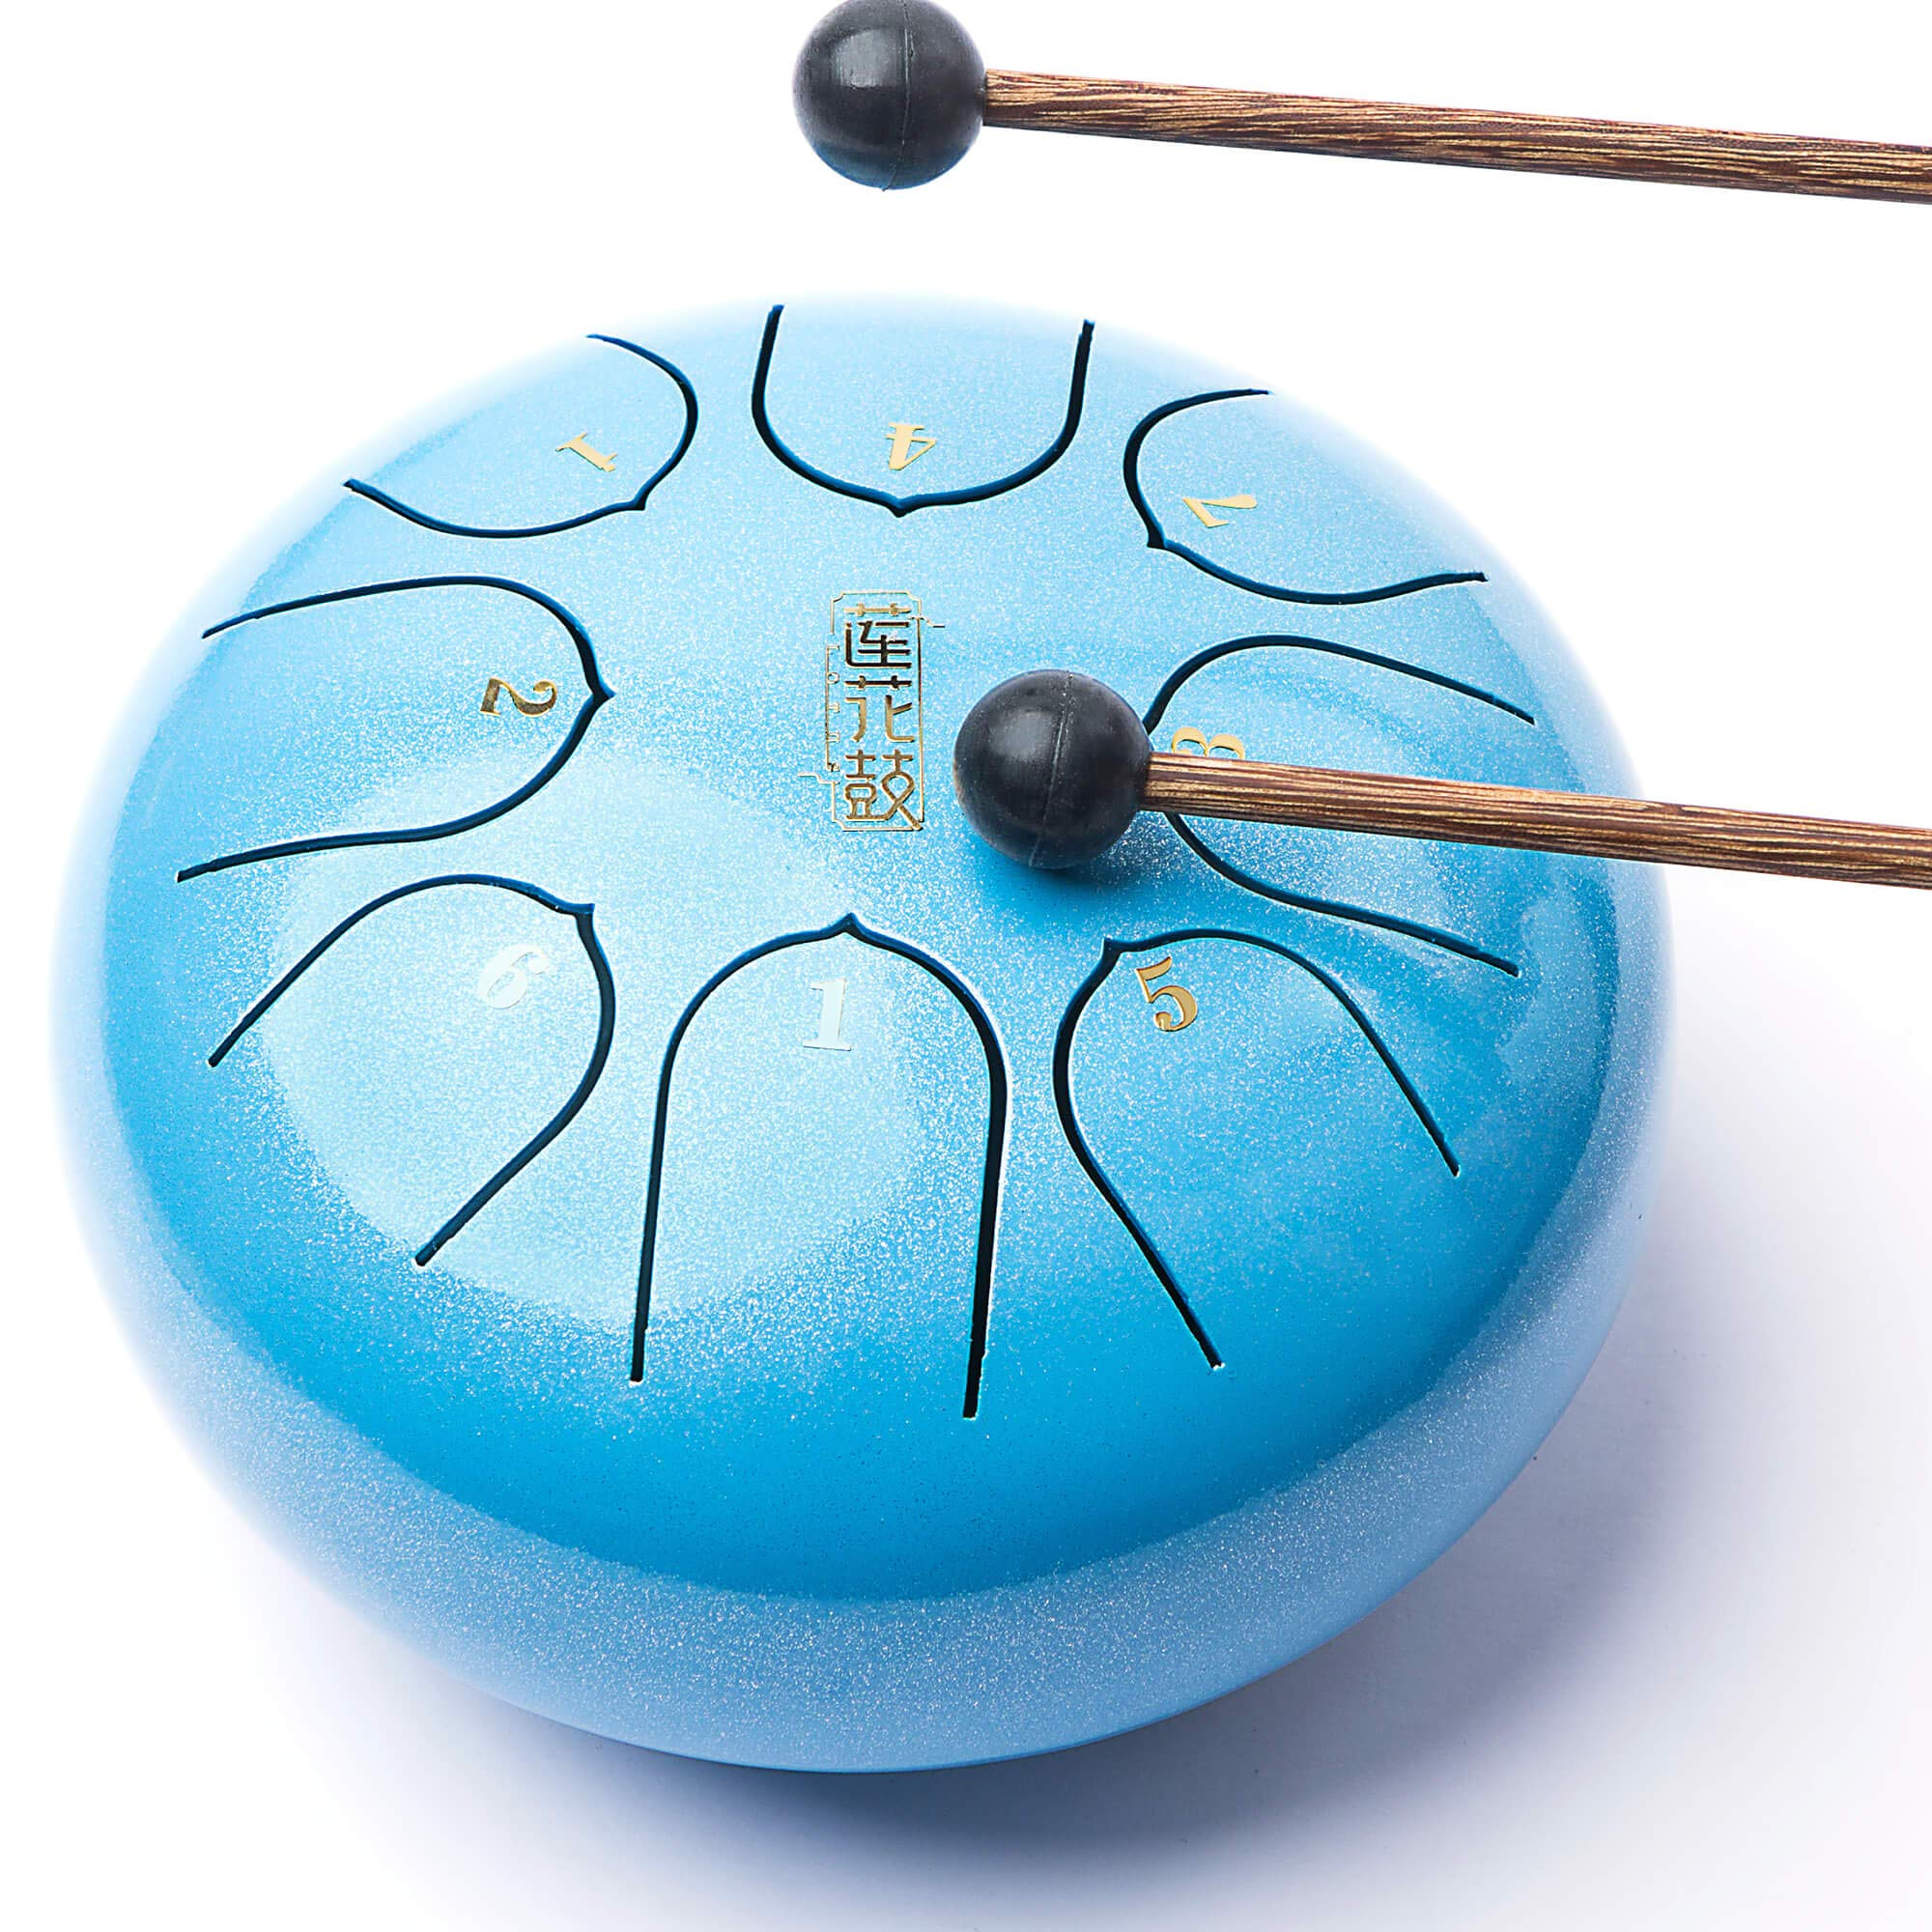 Lronbird Mini Steel Tongue Drum - 8 Notes 6 inches - Kid drum - Percussion Instrument - Handpan Drum with Padded Travel Bag, Book, Mallets, Finger Picks for Music practice and Gift (Blue) by Lronbird